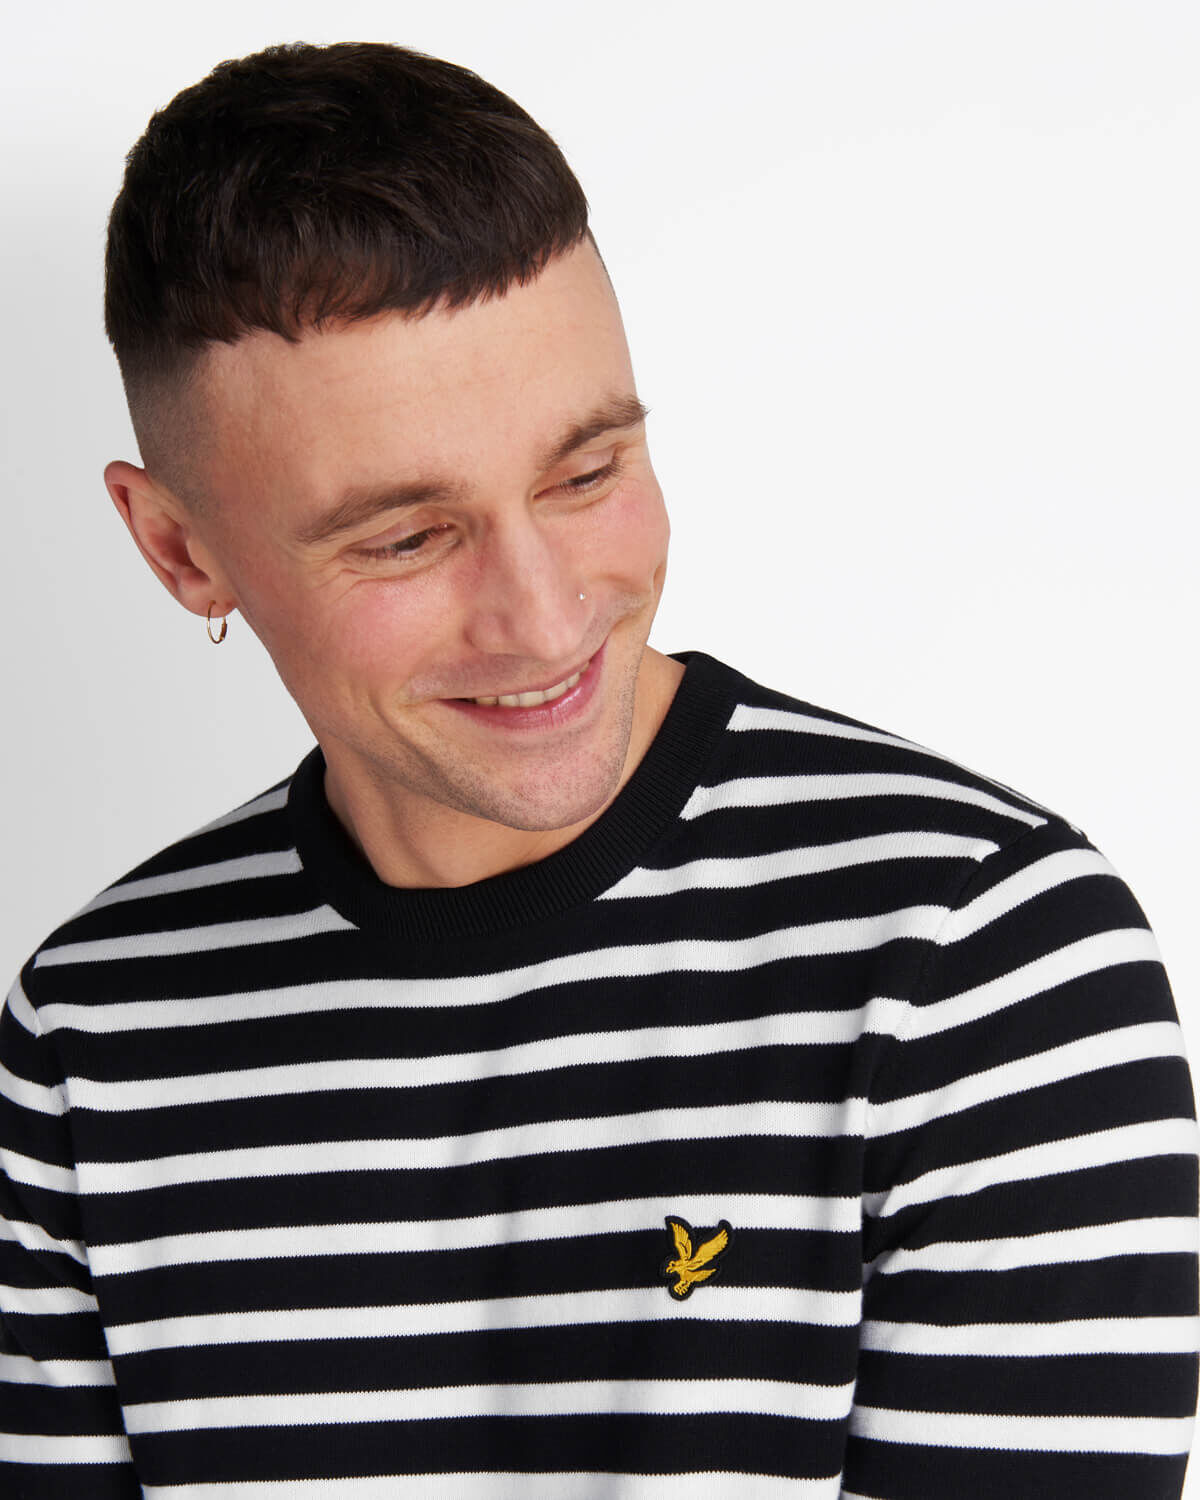 Lyle-and-Scott-Men-Breton-Stripe-Jumper-Cotton thumbnail 9